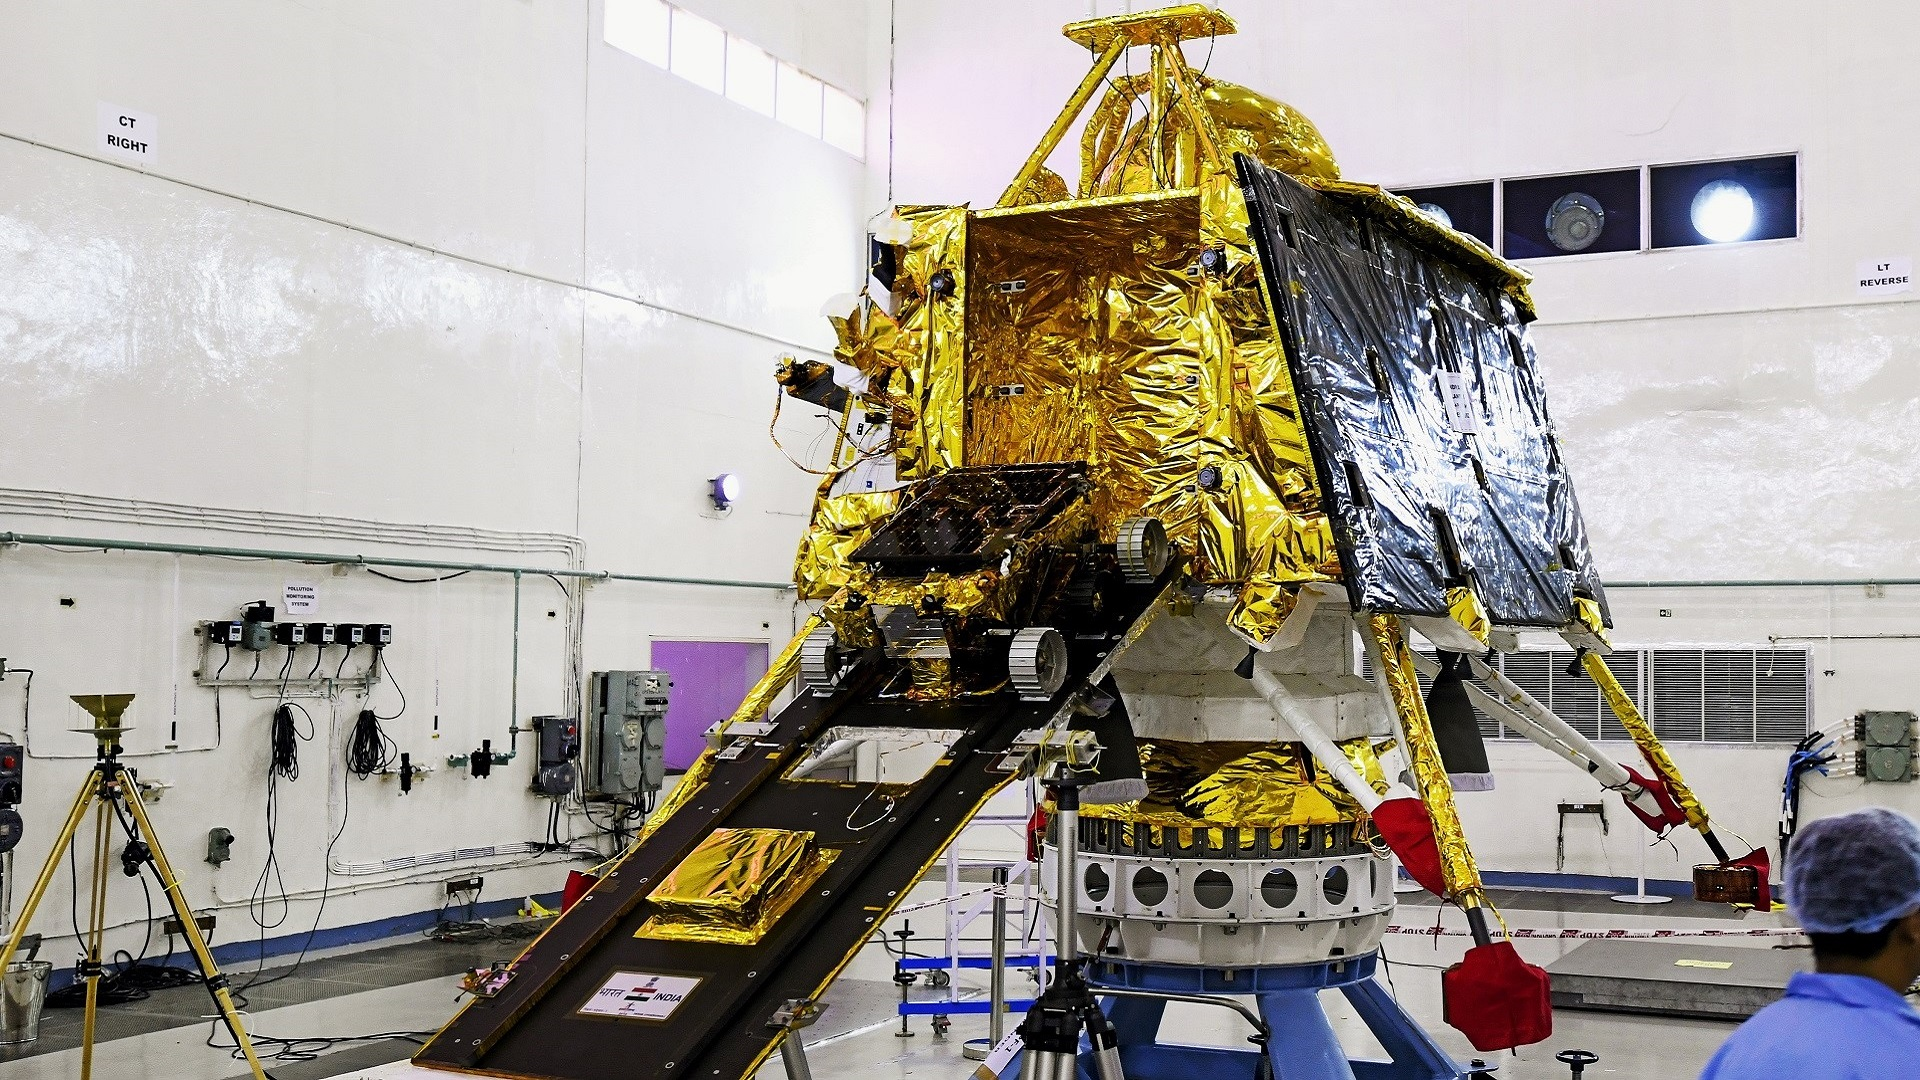 chandrayaan-2 mission_india space_moon misson